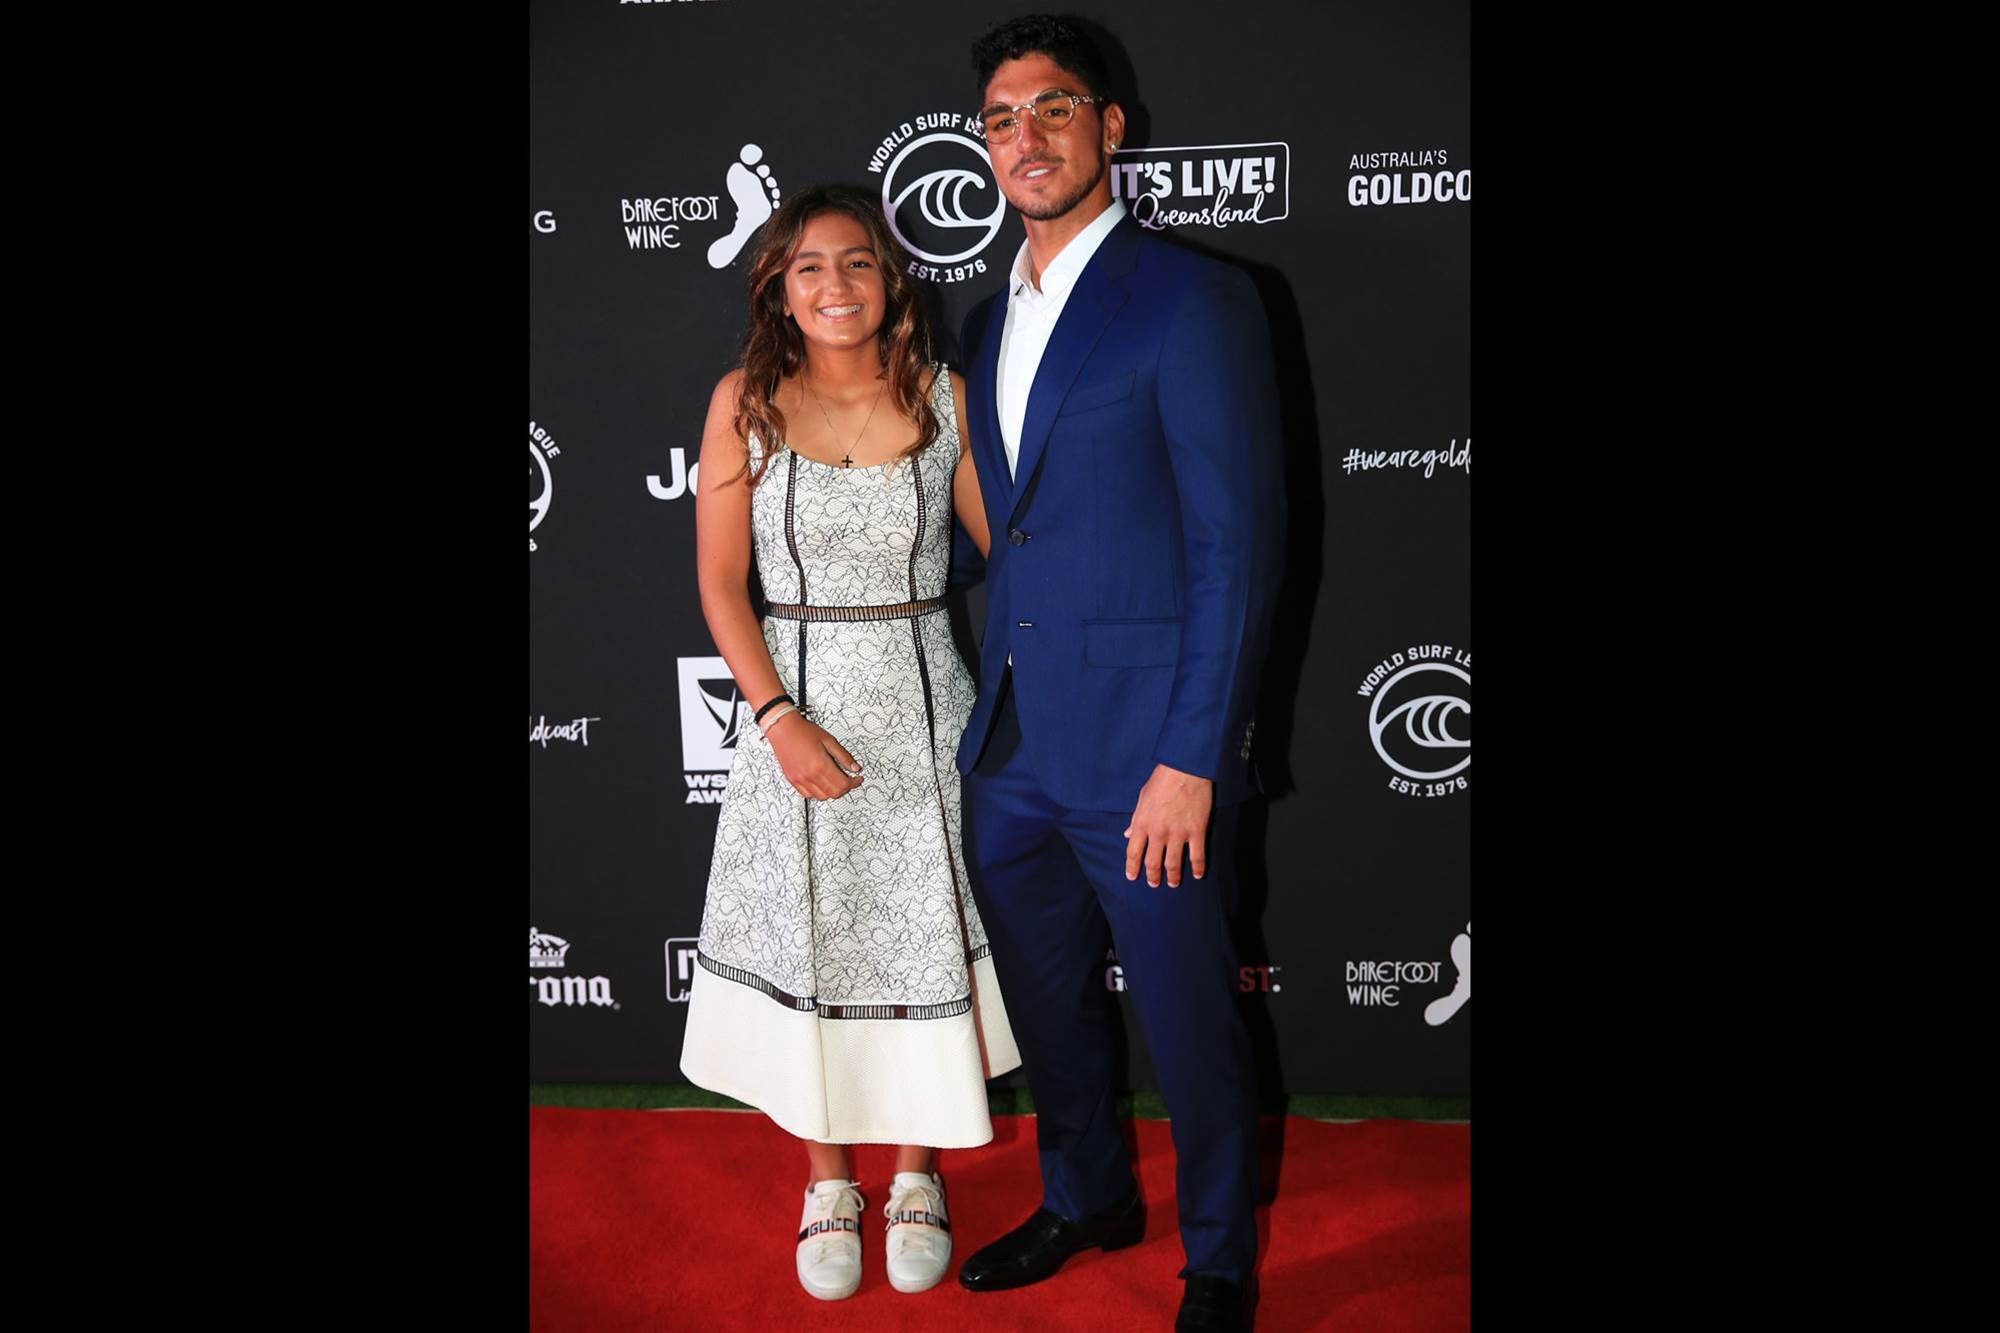 Who Stole the Show at The Live WSL Awards?